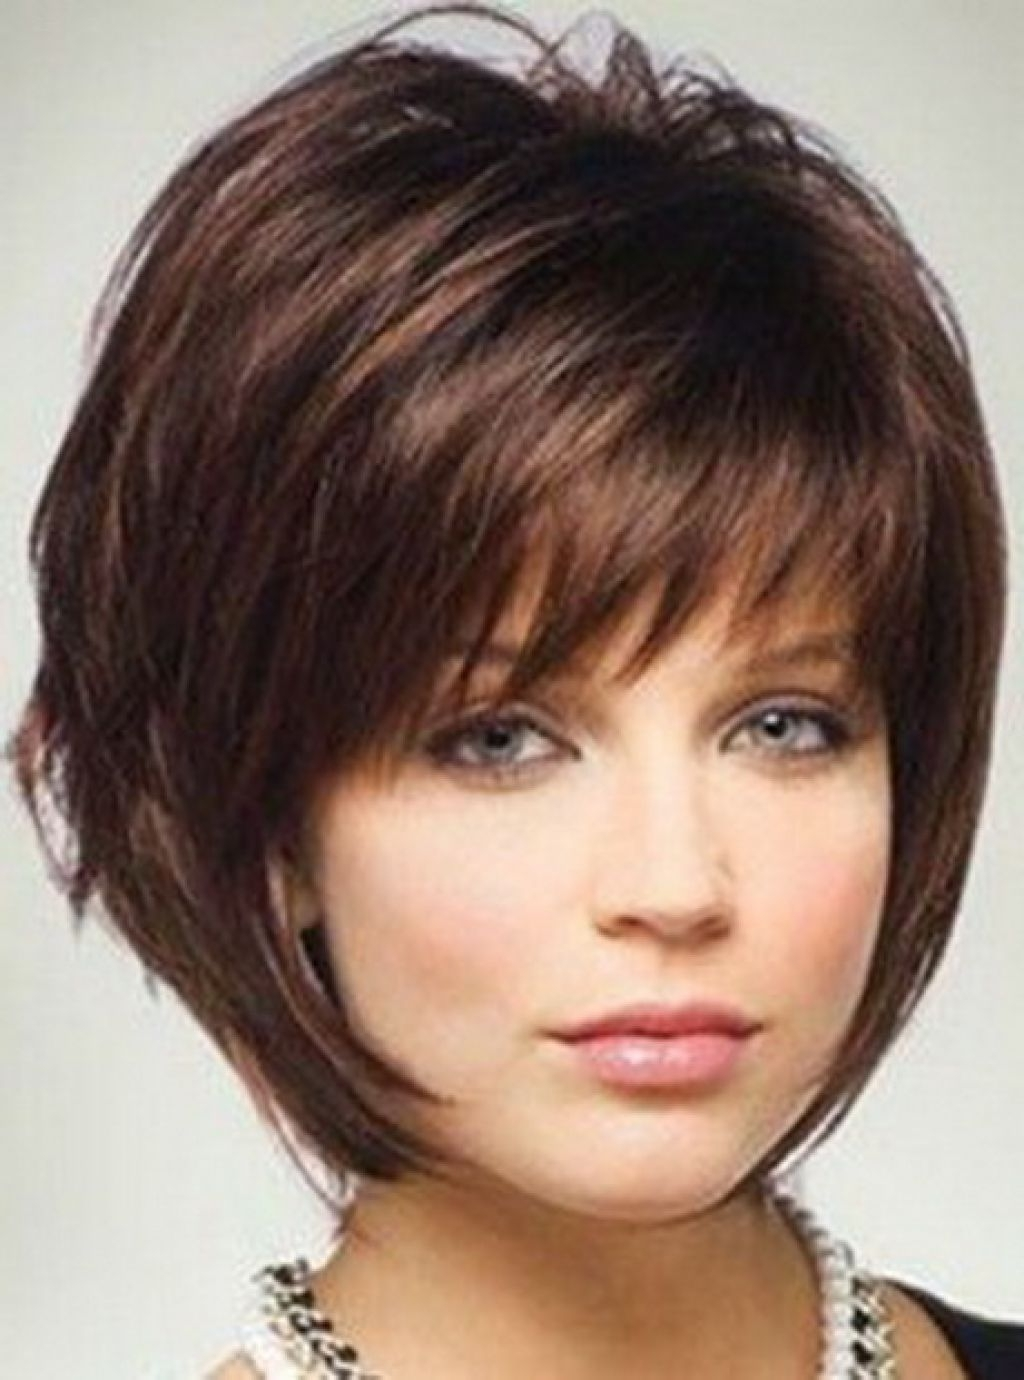 Most Up To Date Short Shaggy Hairstyles With Bangs With Regard To Short Shaggy Hairstyles With Bangs – Hairstyle For Women & Man (View 2 of 15)